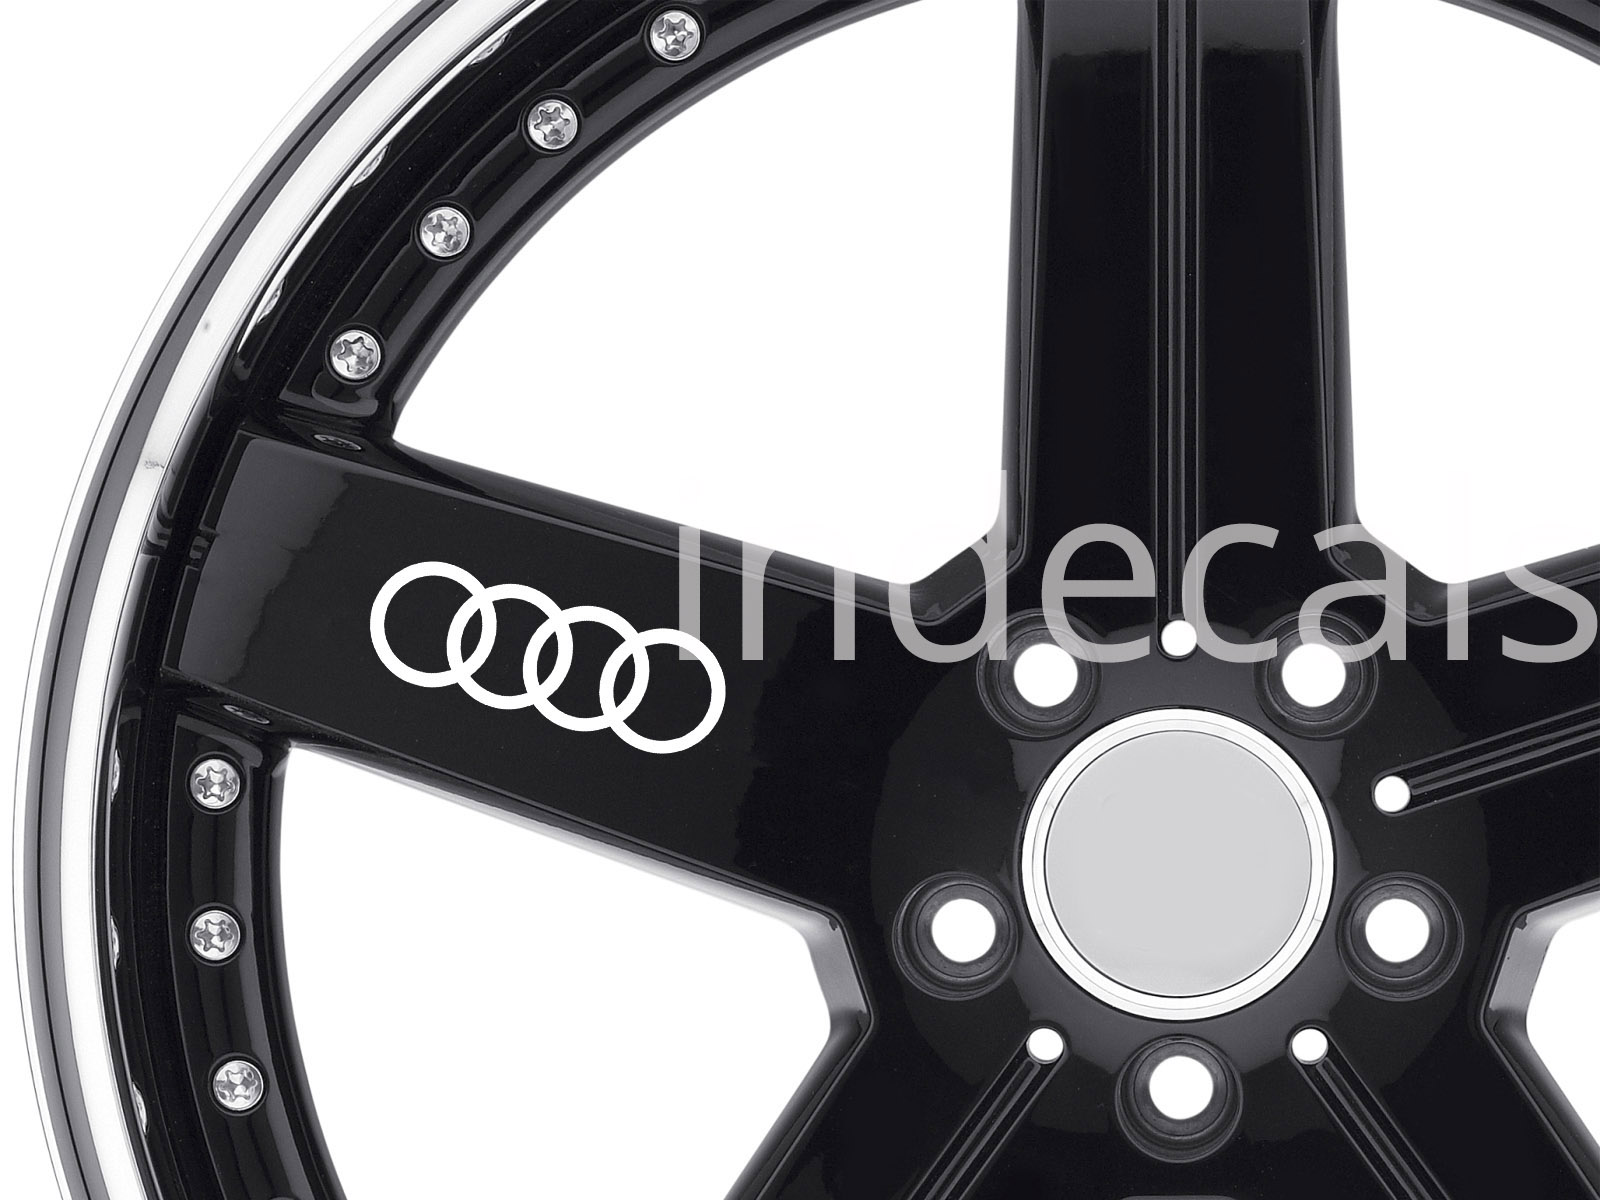 6 x Audi Rings Stickers for Wheels - White